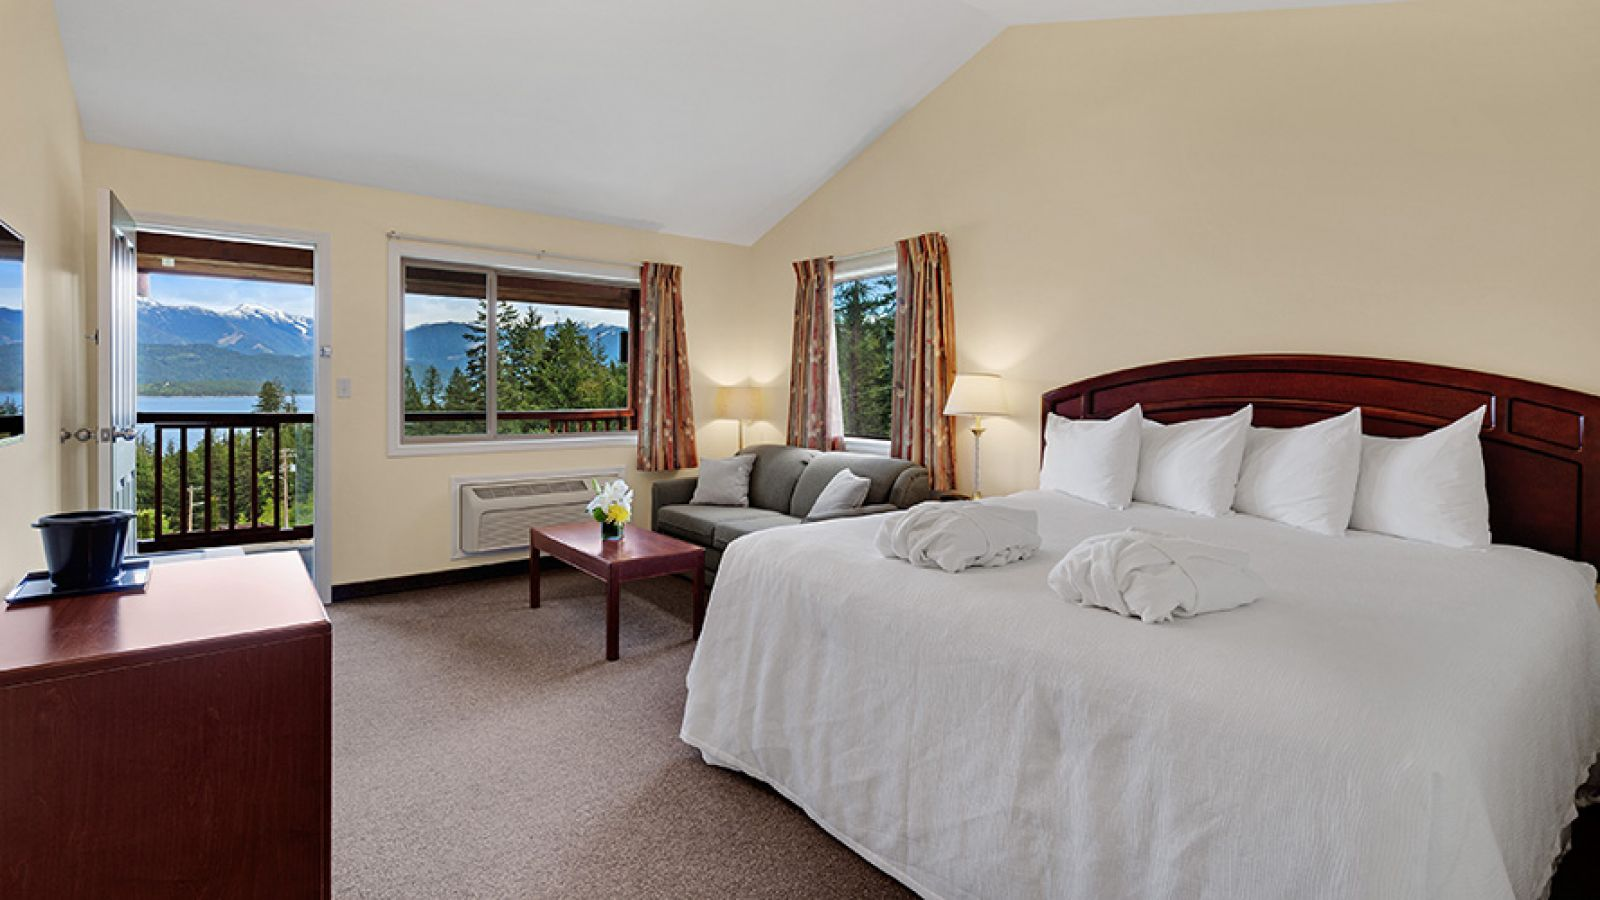 Wonderful guest rooms.